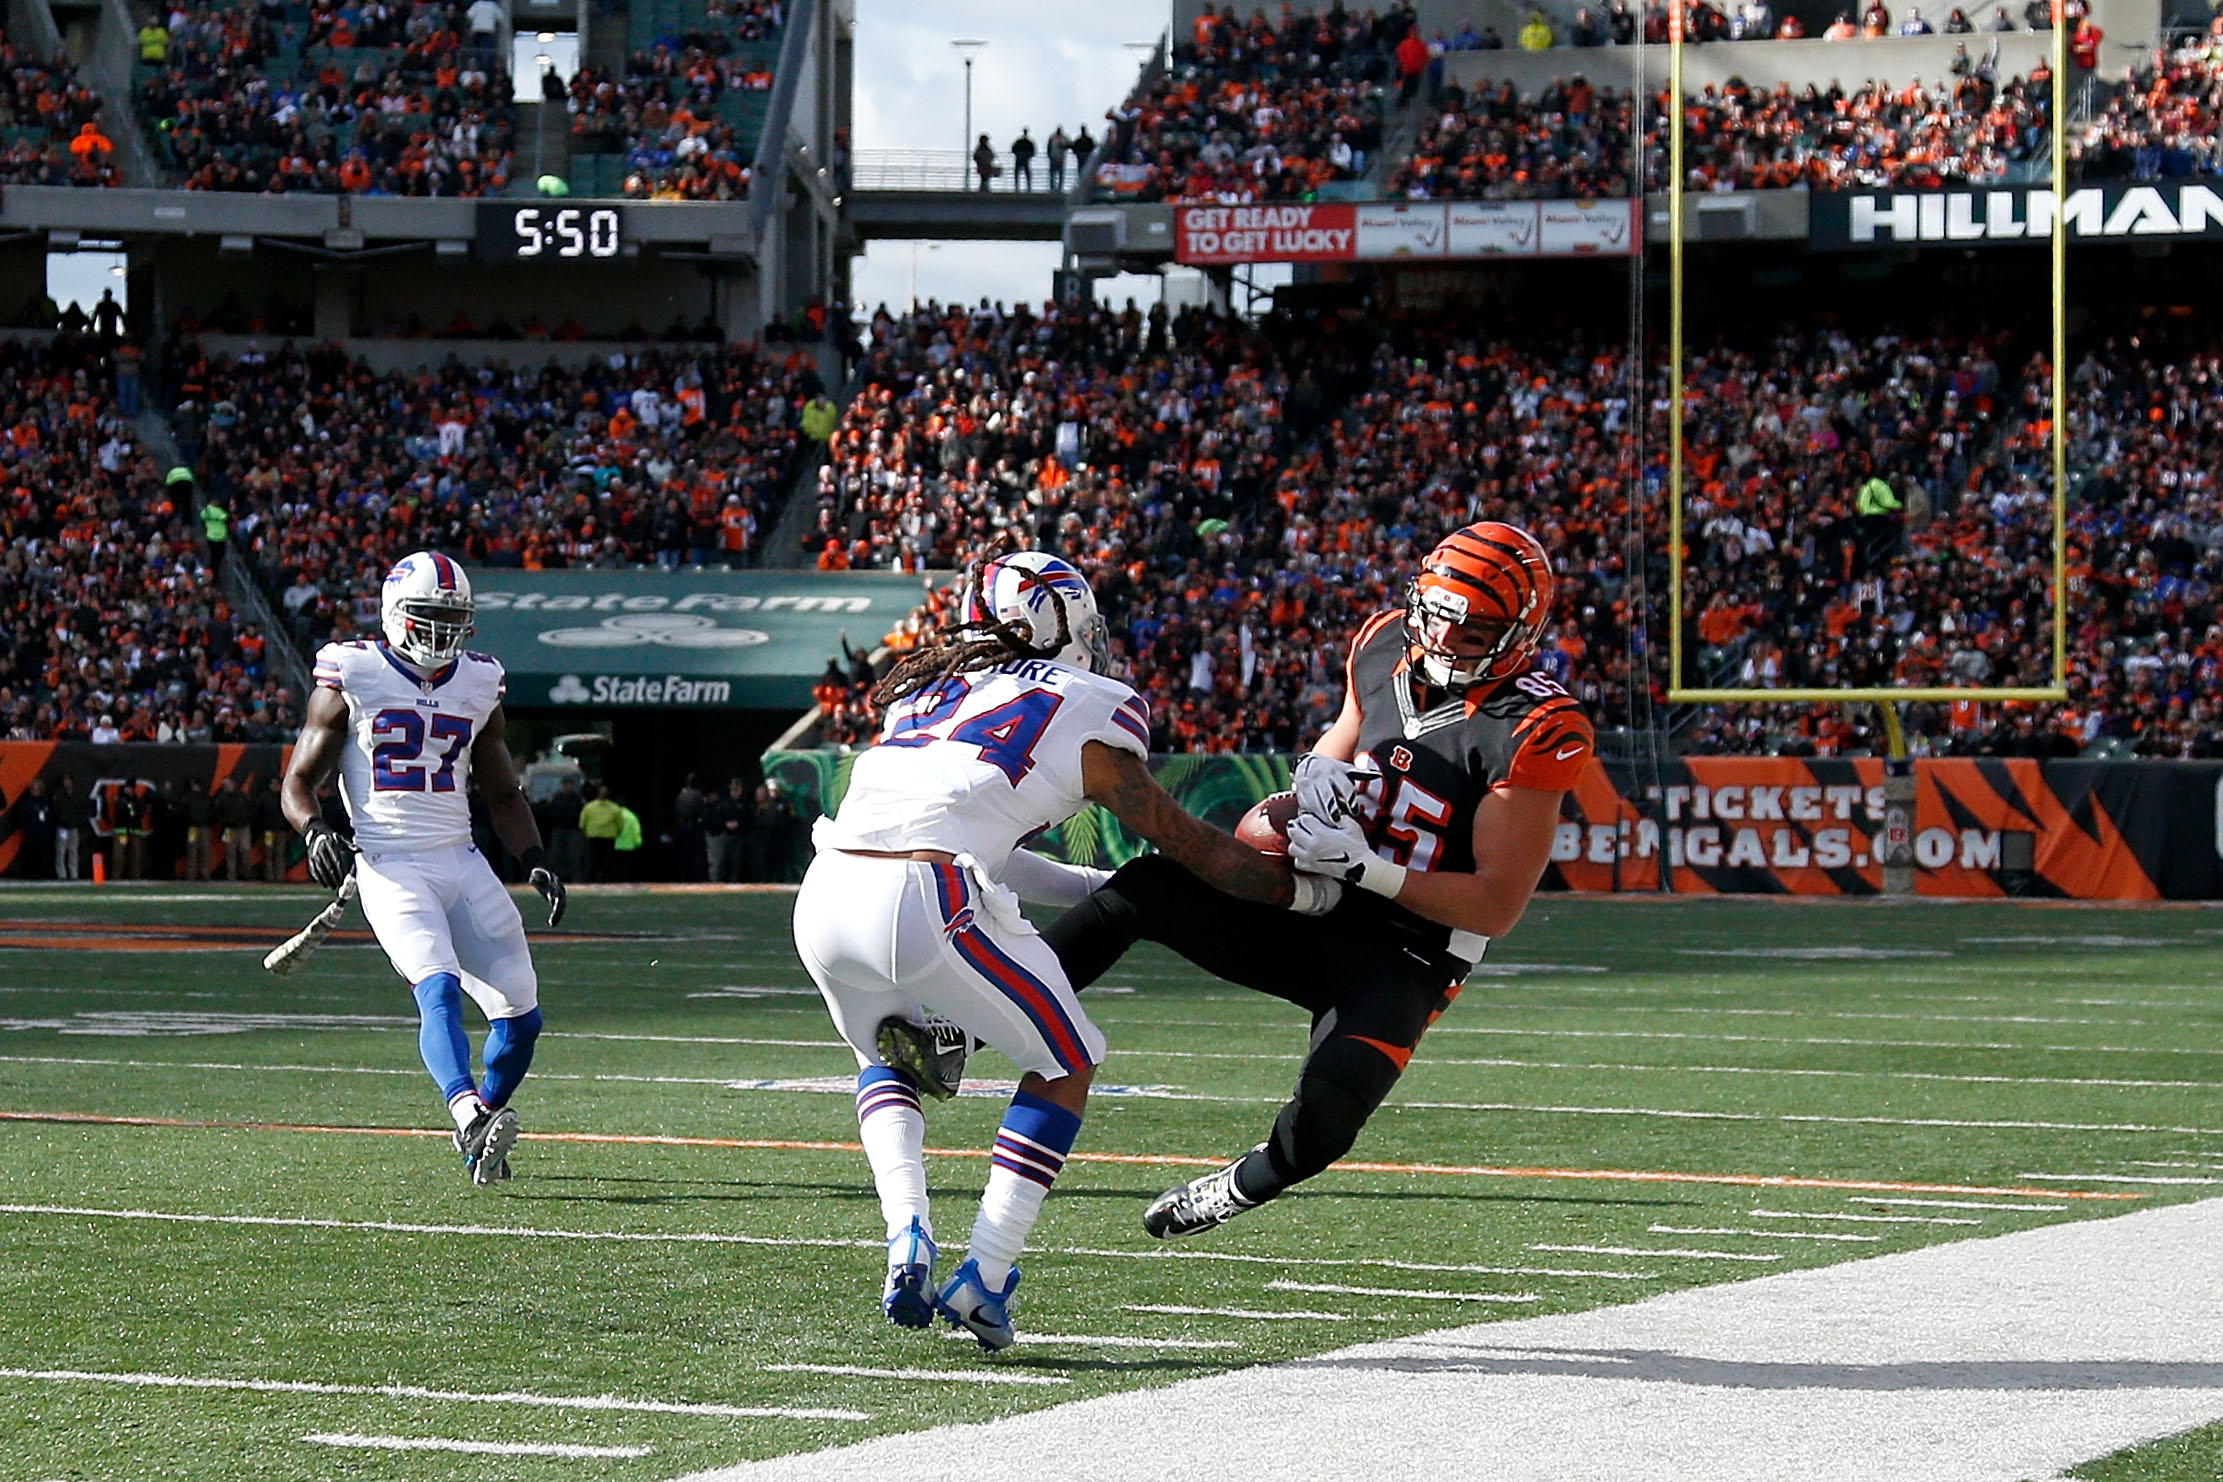 Tyler Eifert of the Cincinnati Bengals is hit by Stephon Gilmore after a catch in the second quarter. (Getty Images)